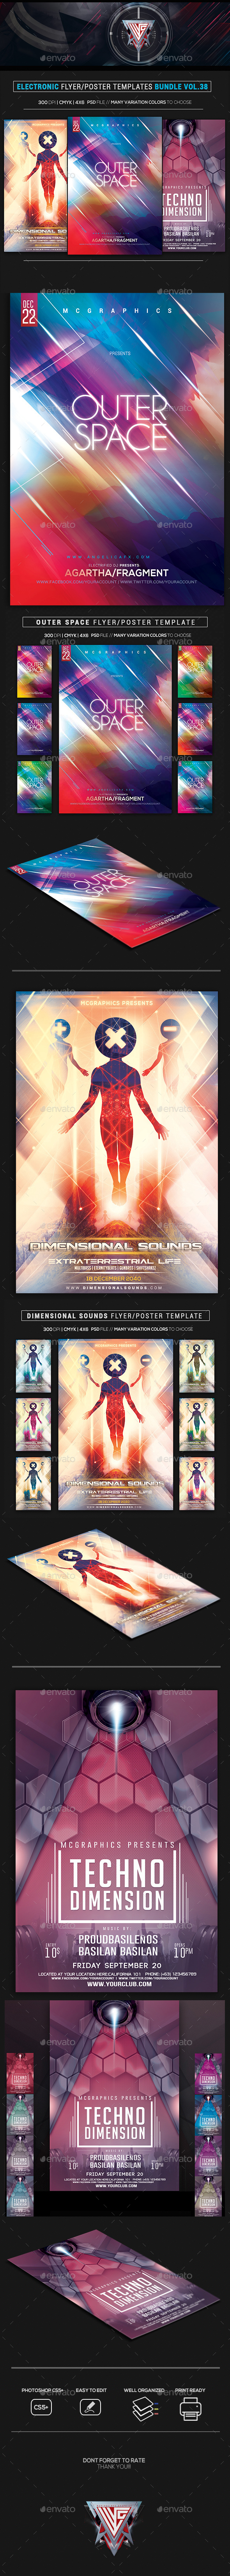 Electro Music Flyer Bundle Vol. 38 - Events Flyers